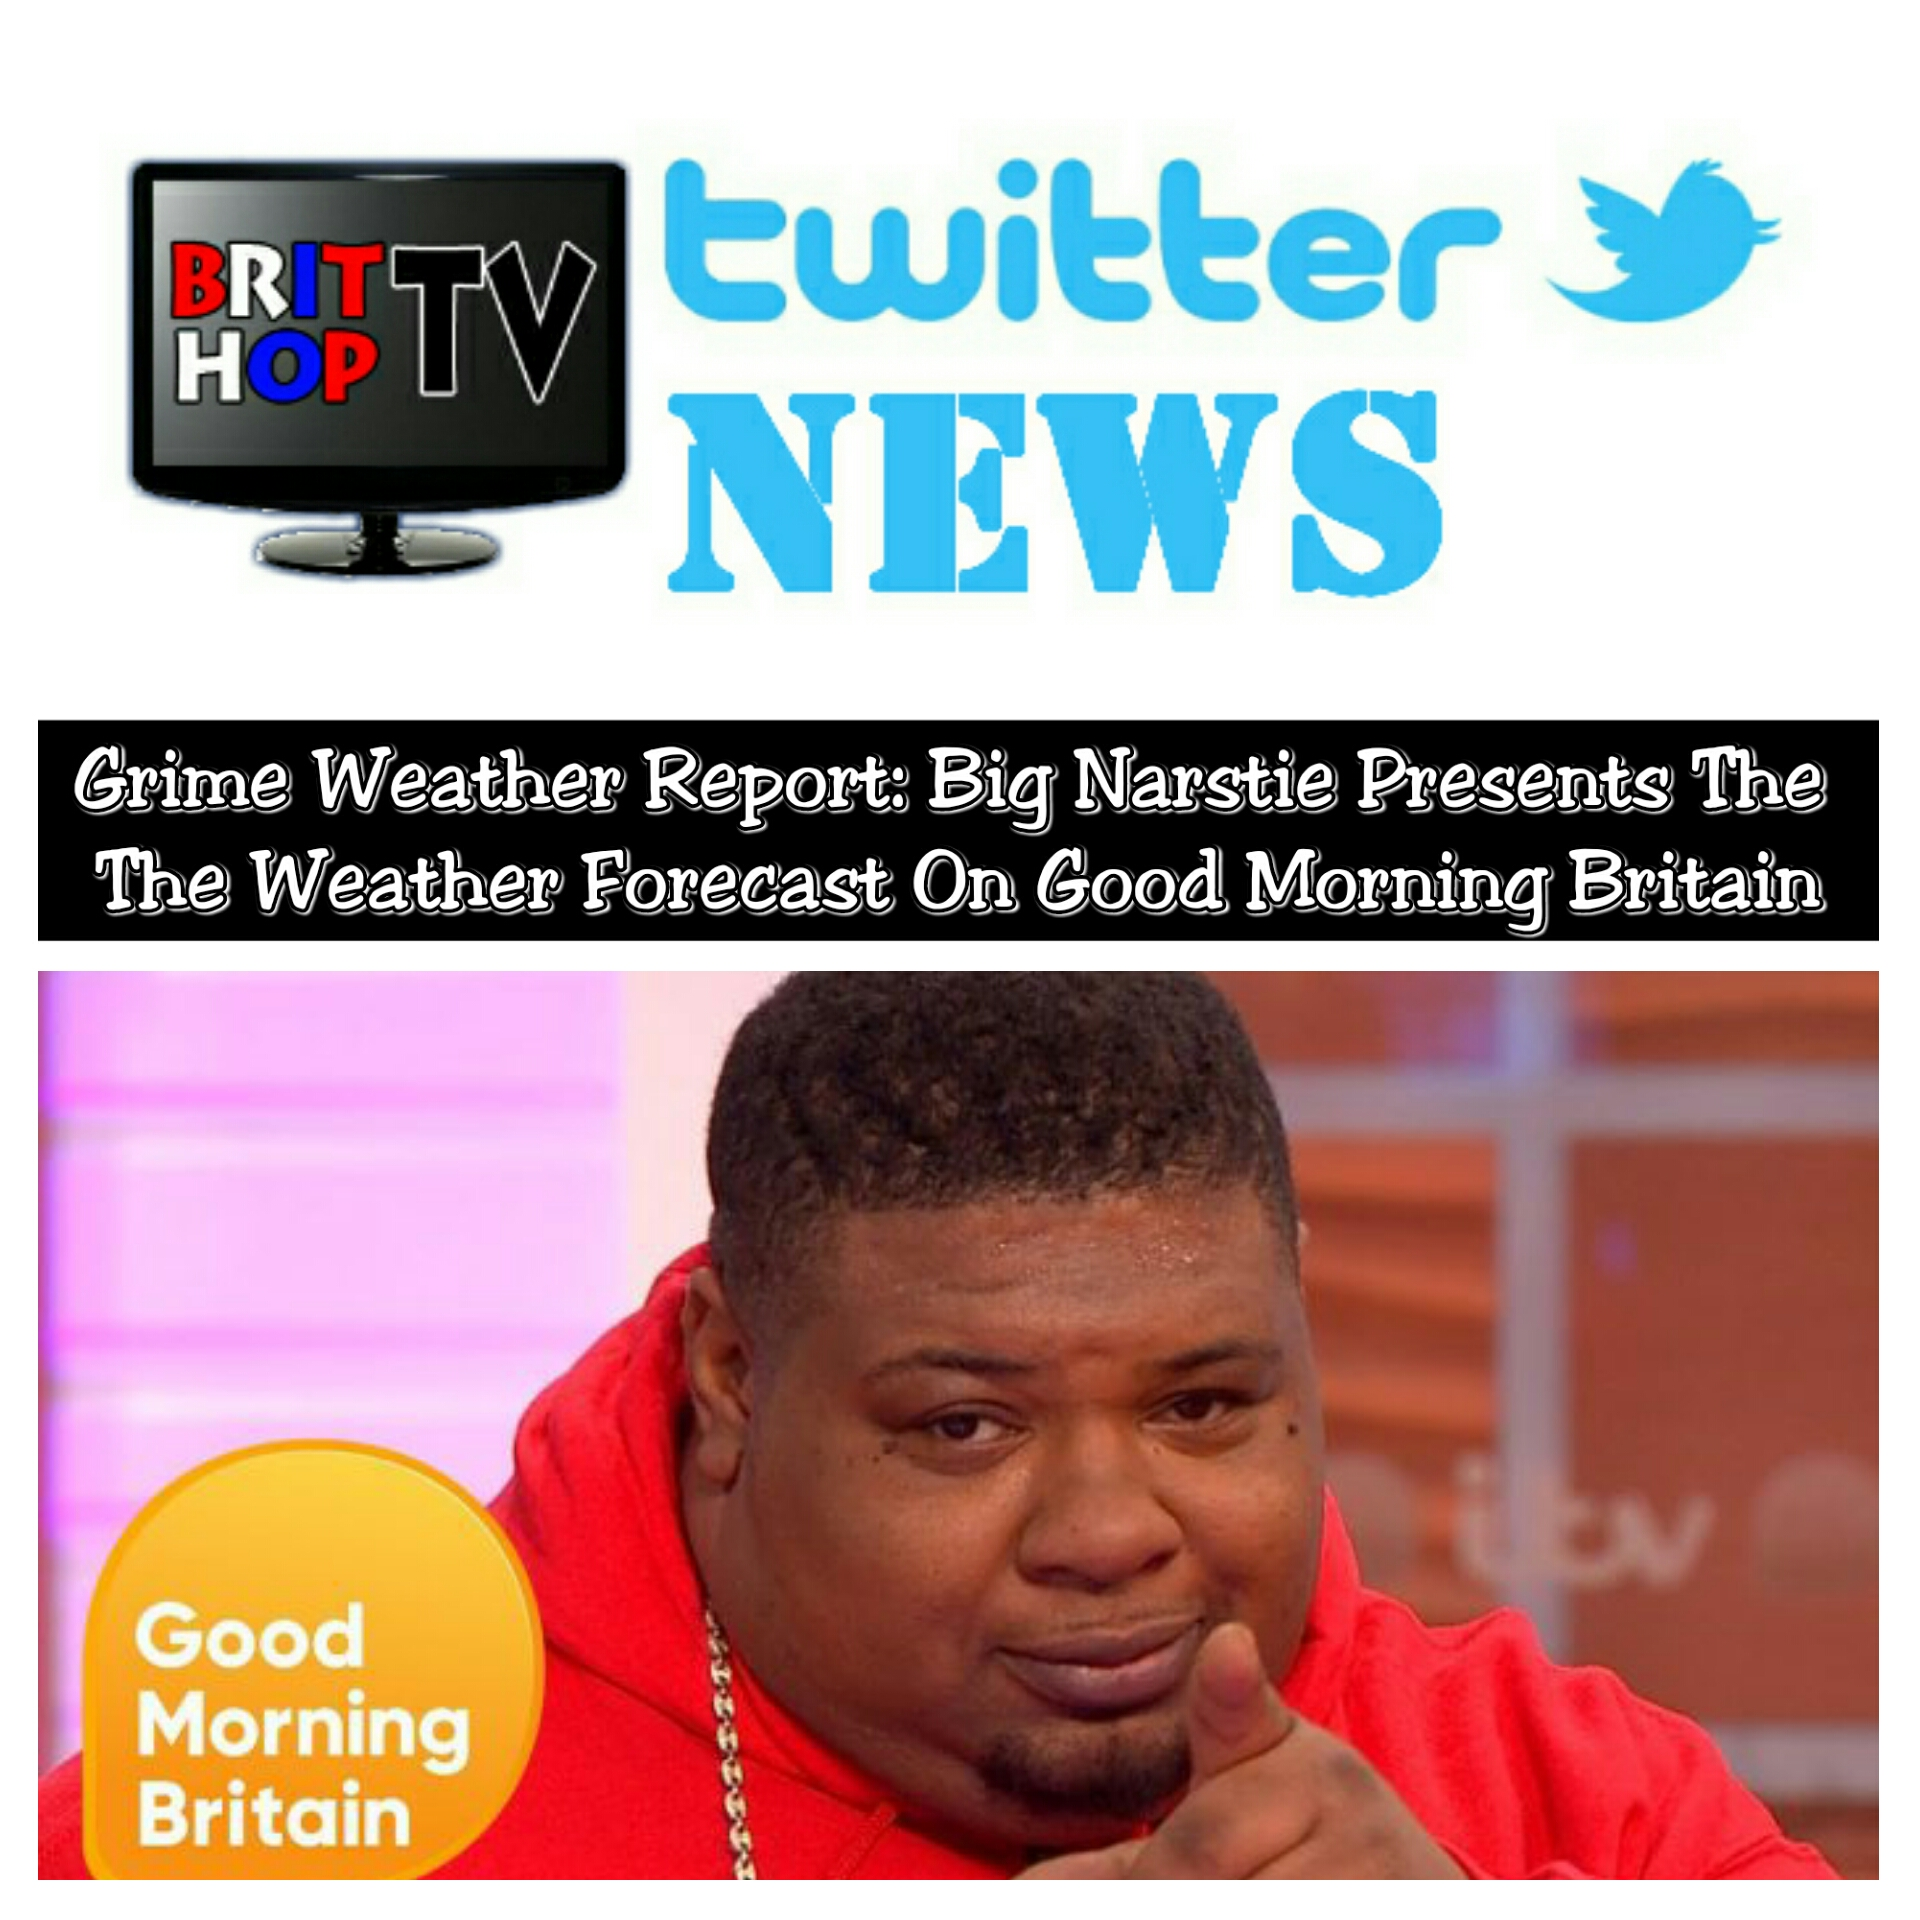 BRITHOPTV: [News] Grime Weather Report: Big Narstie Presents The Weather Forecast On Good Morning Britain | #Grime #News